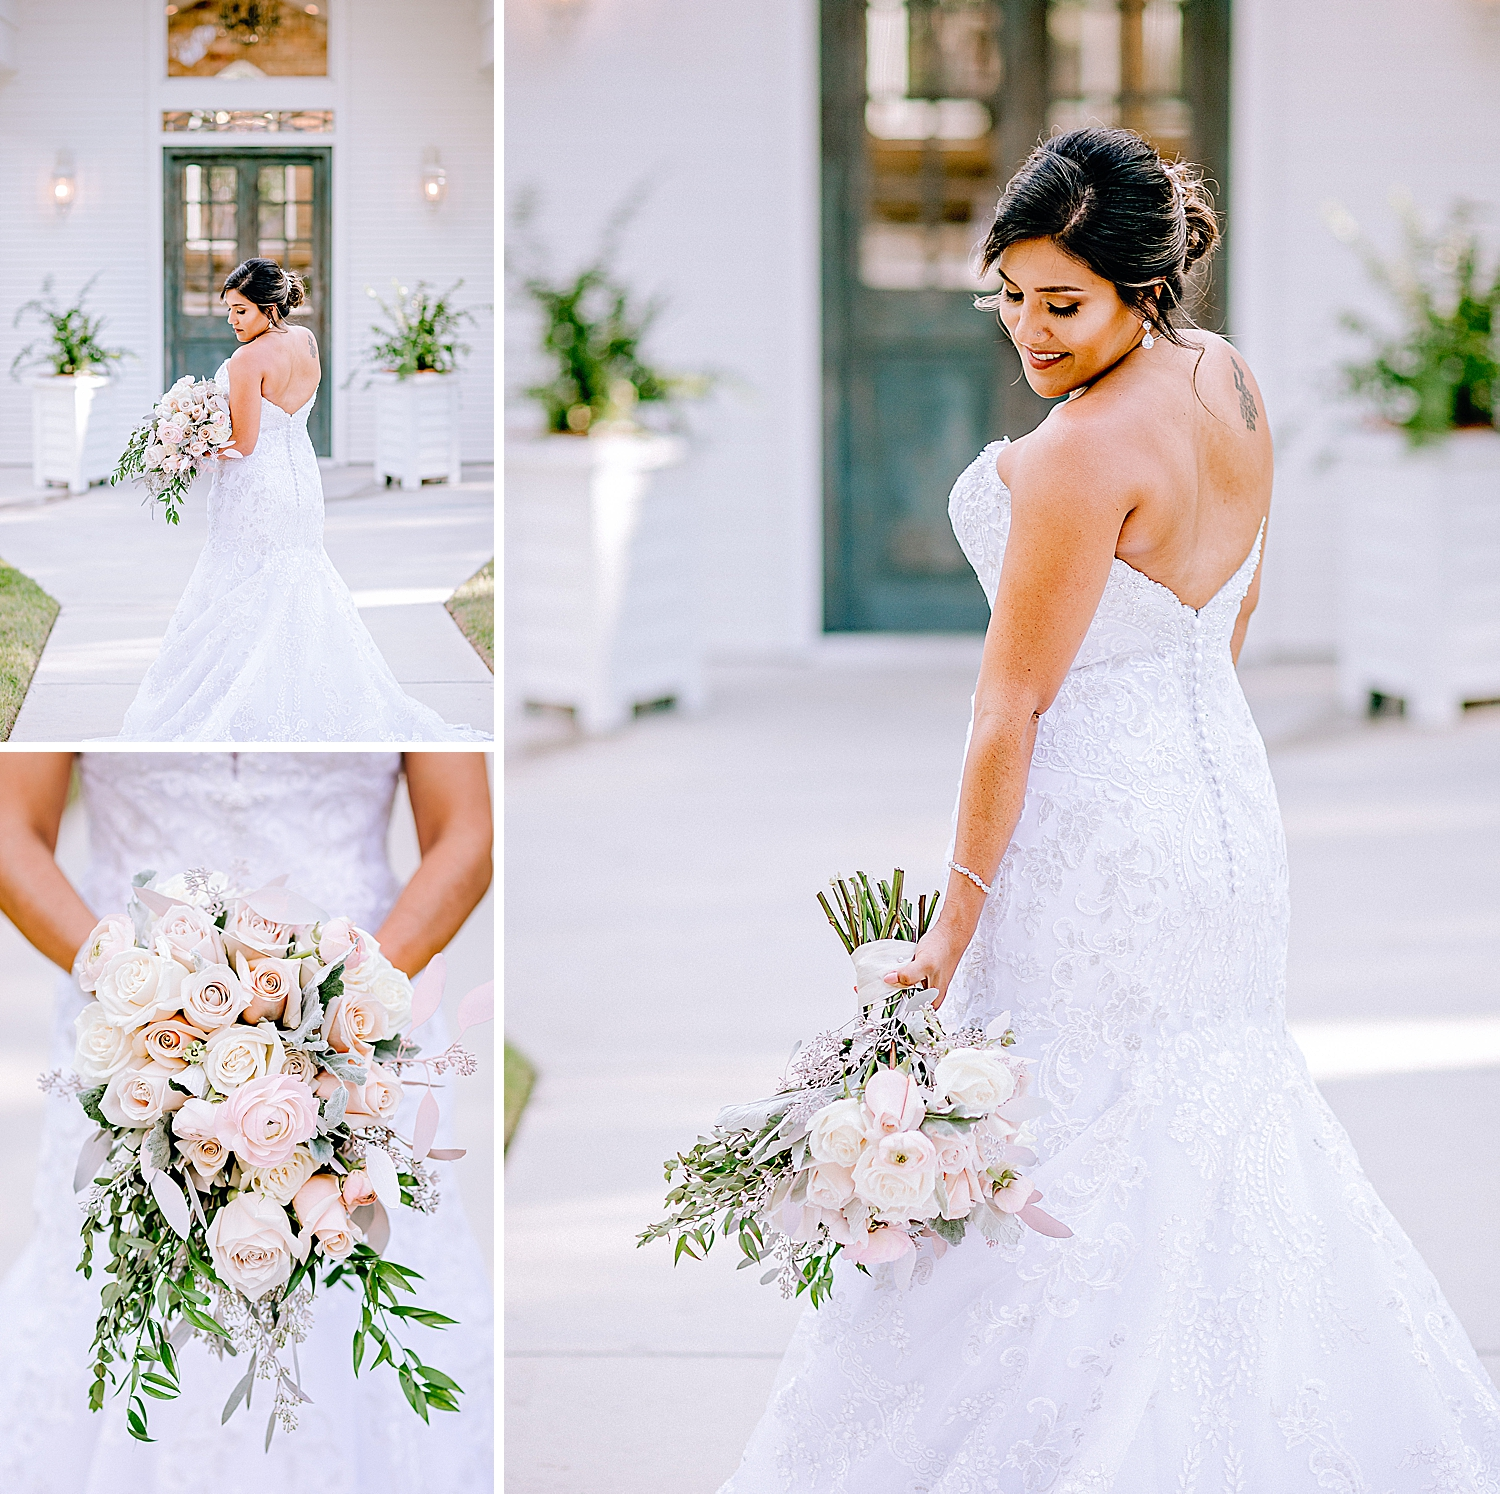 Carly-Barton-Photography-Bridal-Photos-Chadelier-of-Gruene-New-Braunfels-Wedding-Photographer_0006.jpg